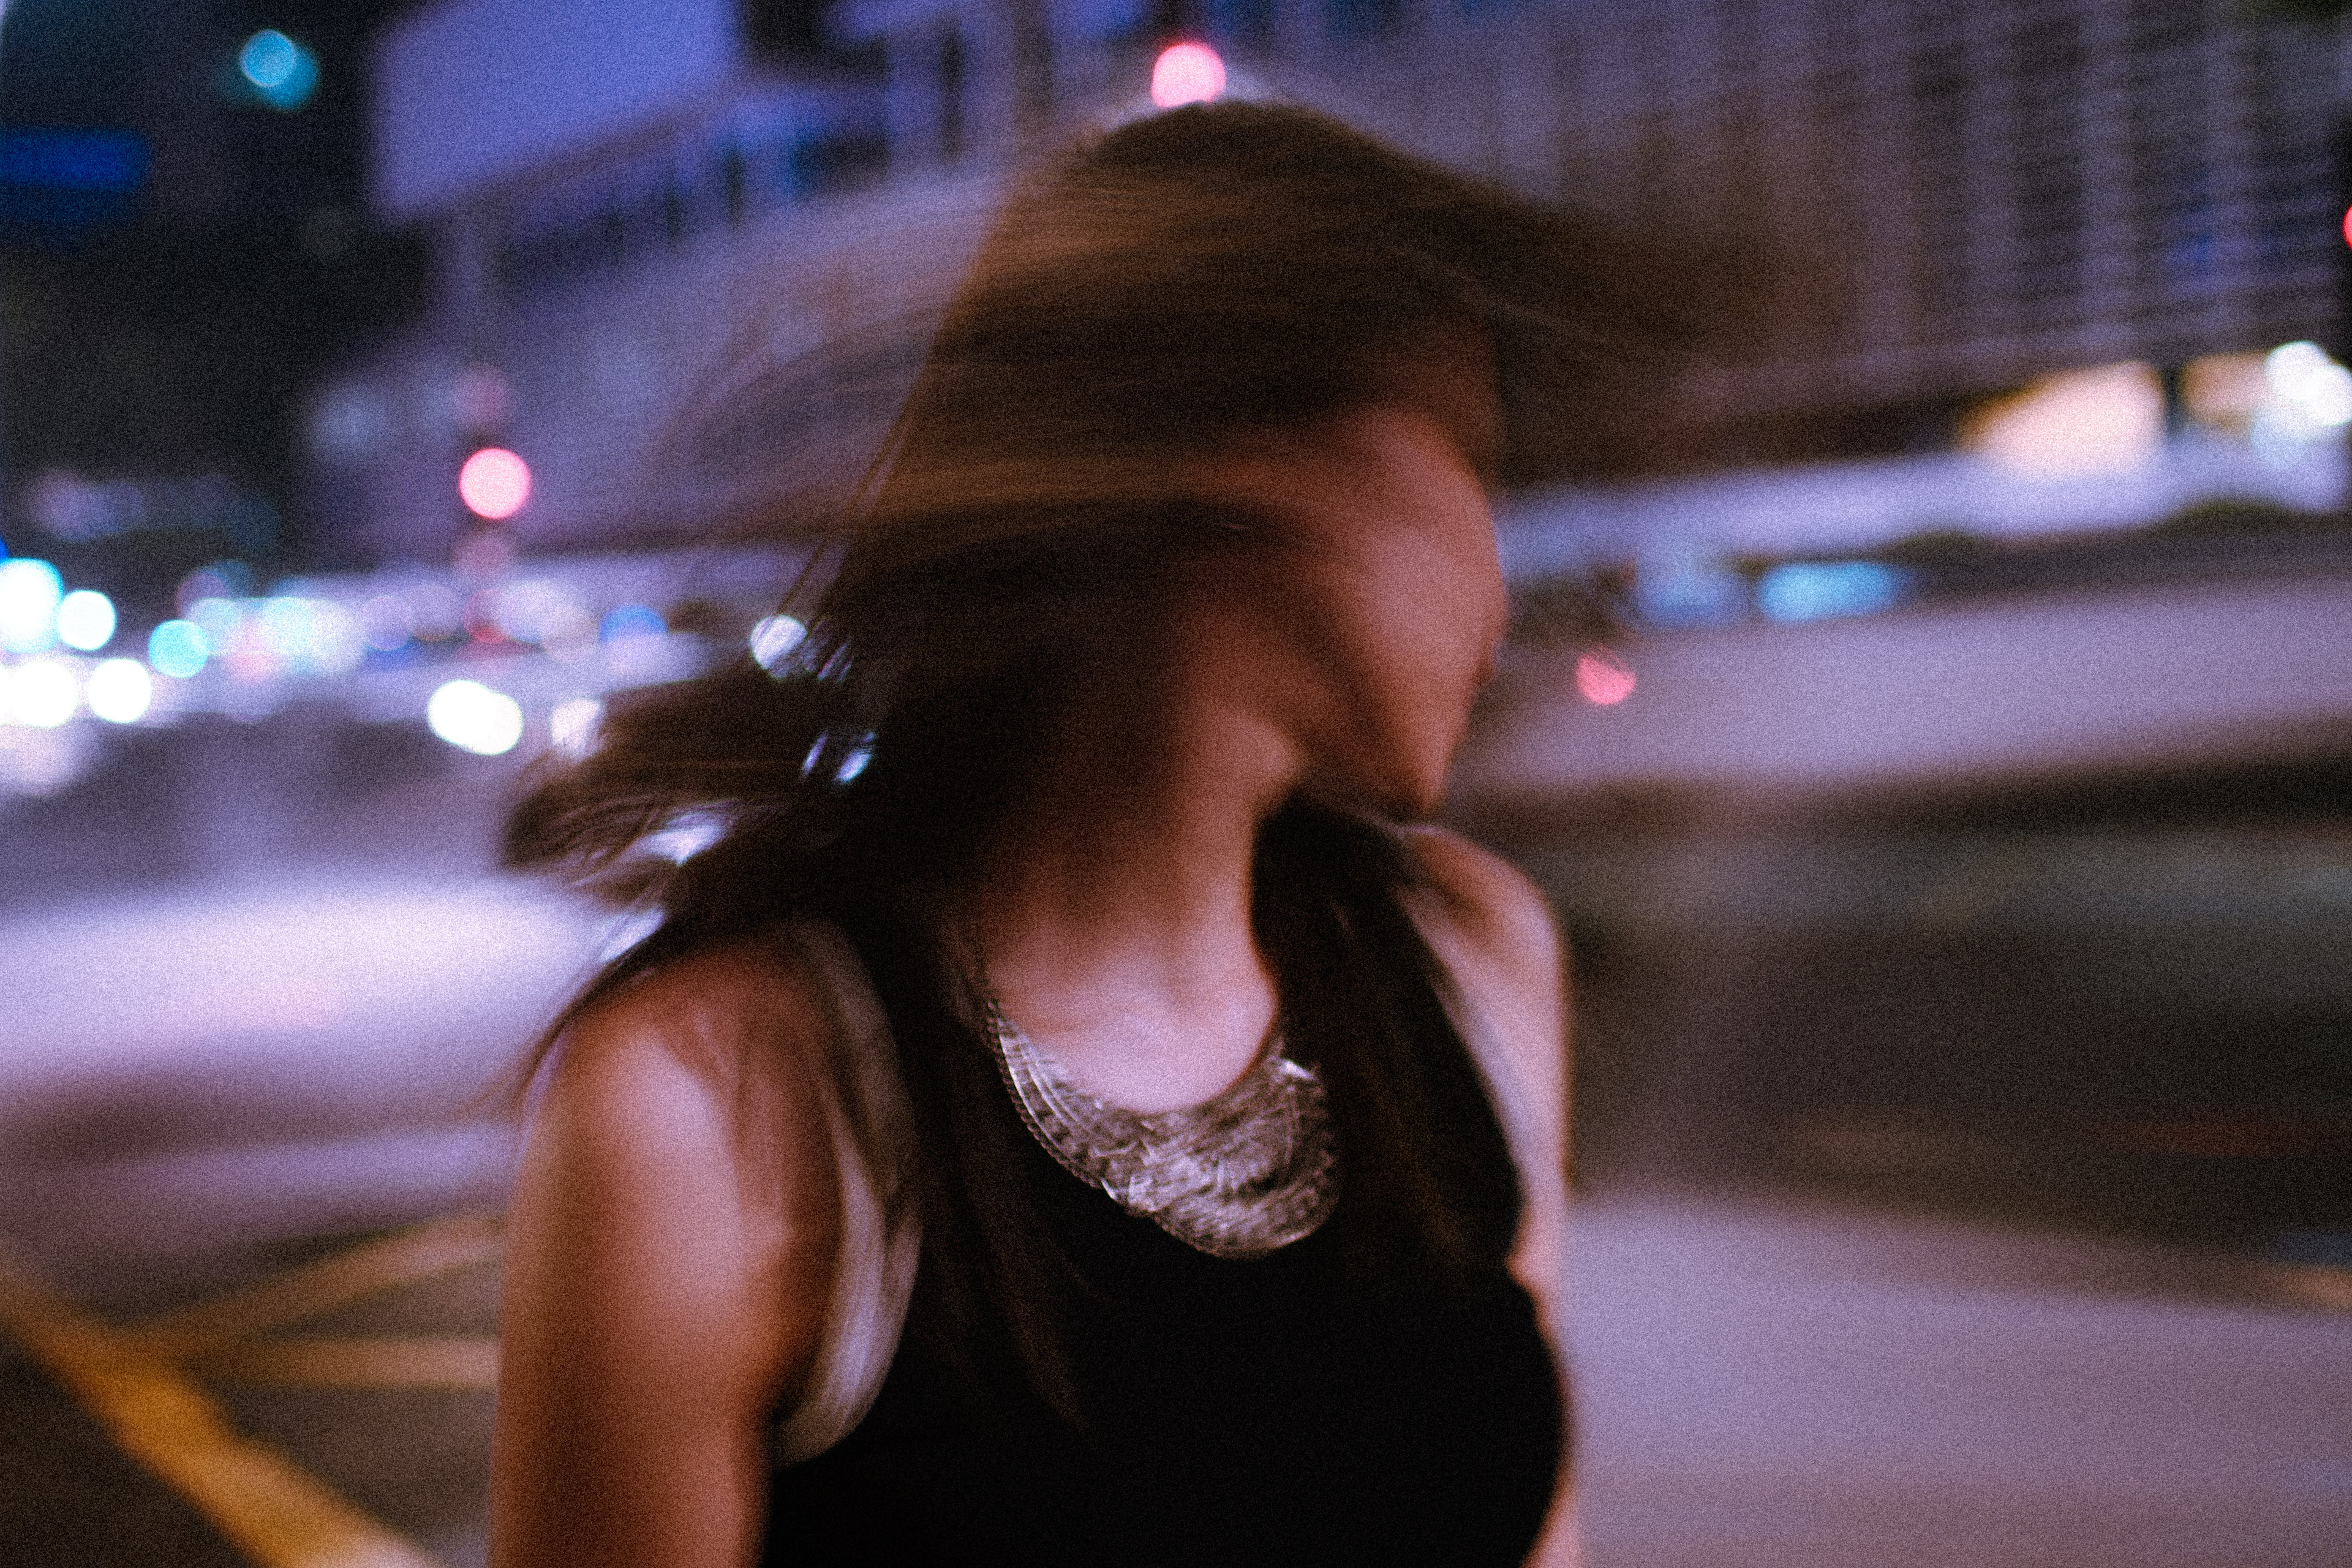 Tilt Shift Photography of Woman Wearing Tank Top during Nighttime